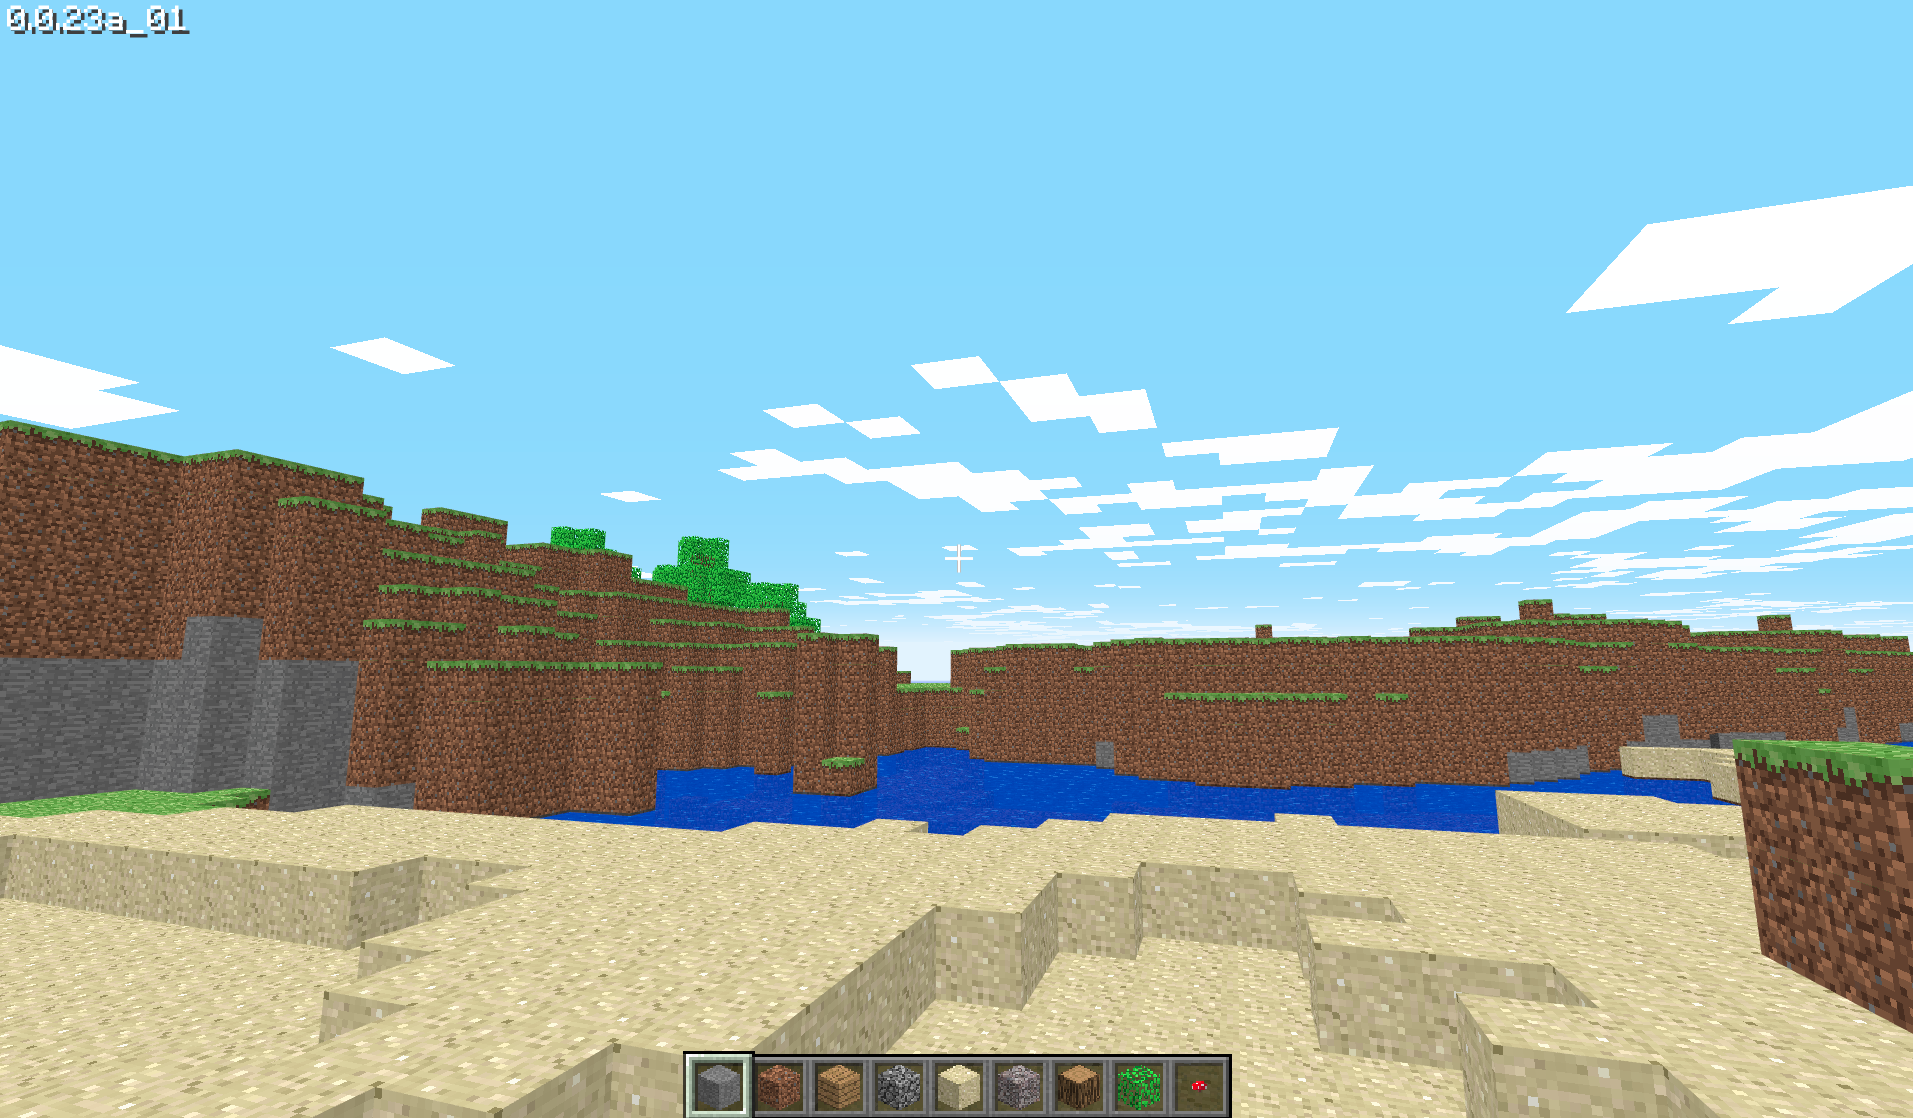 Play Minecraft Classic in your browser on its 10th anniversary CNET